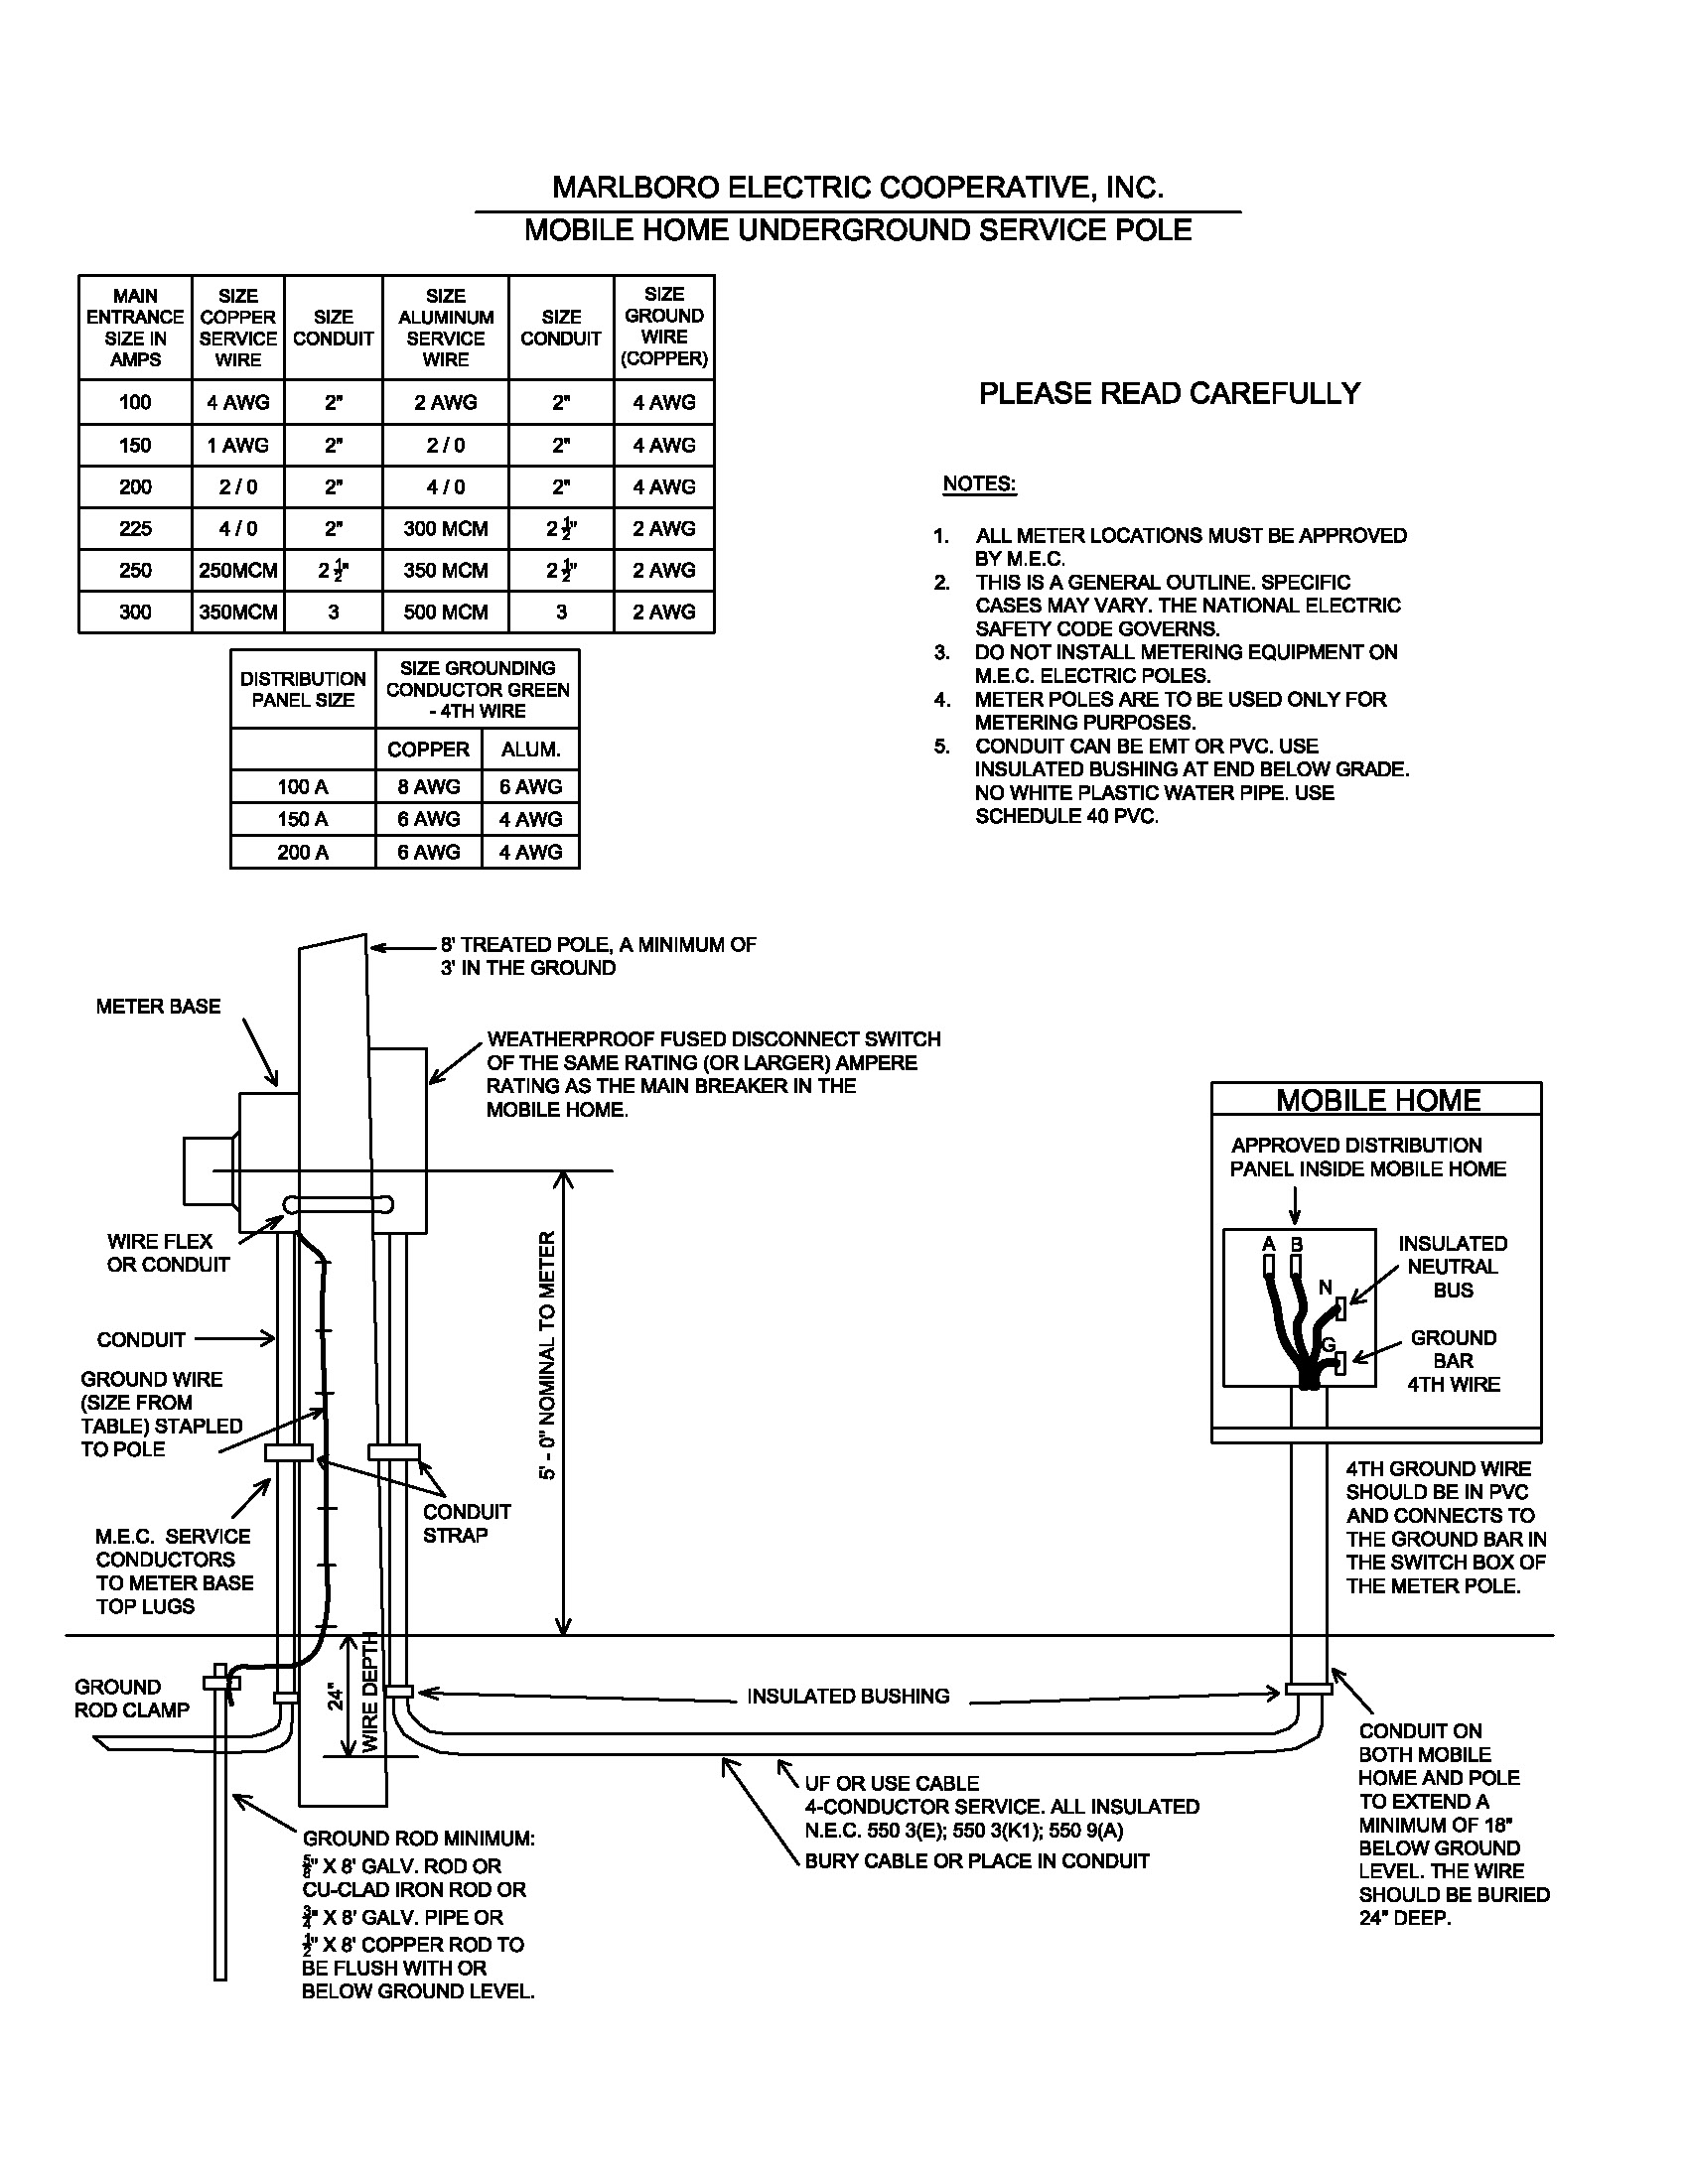 Electrical Service Specifications  U2013 Marlboro Electric Cooperative